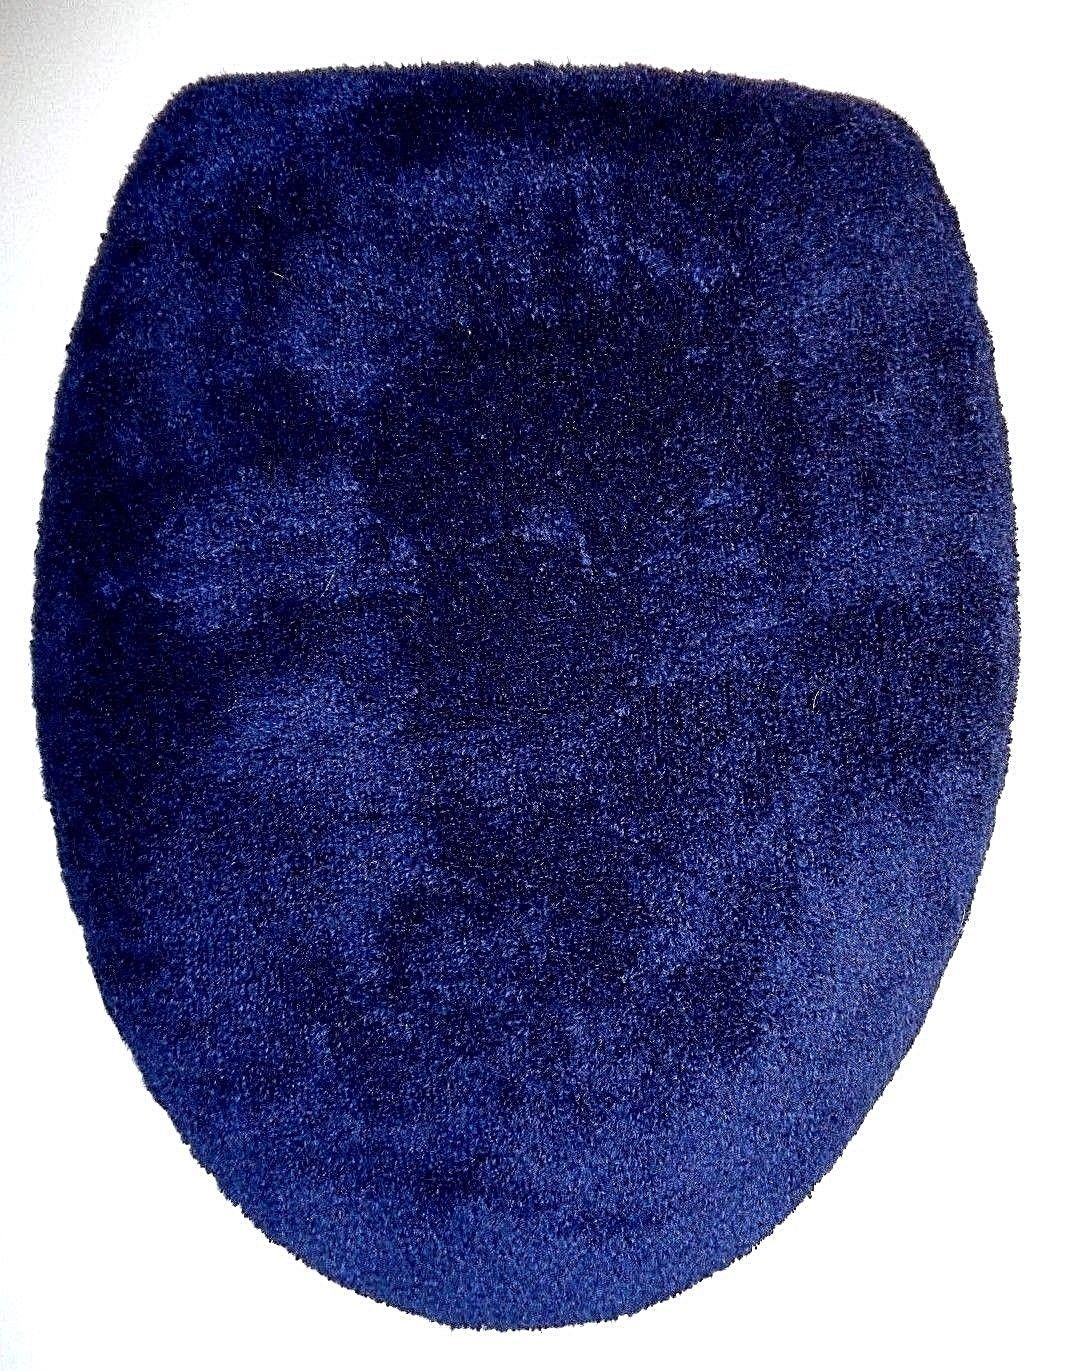 Pleasing Bathmats Rugs And Toilet Covers 133696 Navy Blue Terry Dailytribune Chair Design For Home Dailytribuneorg